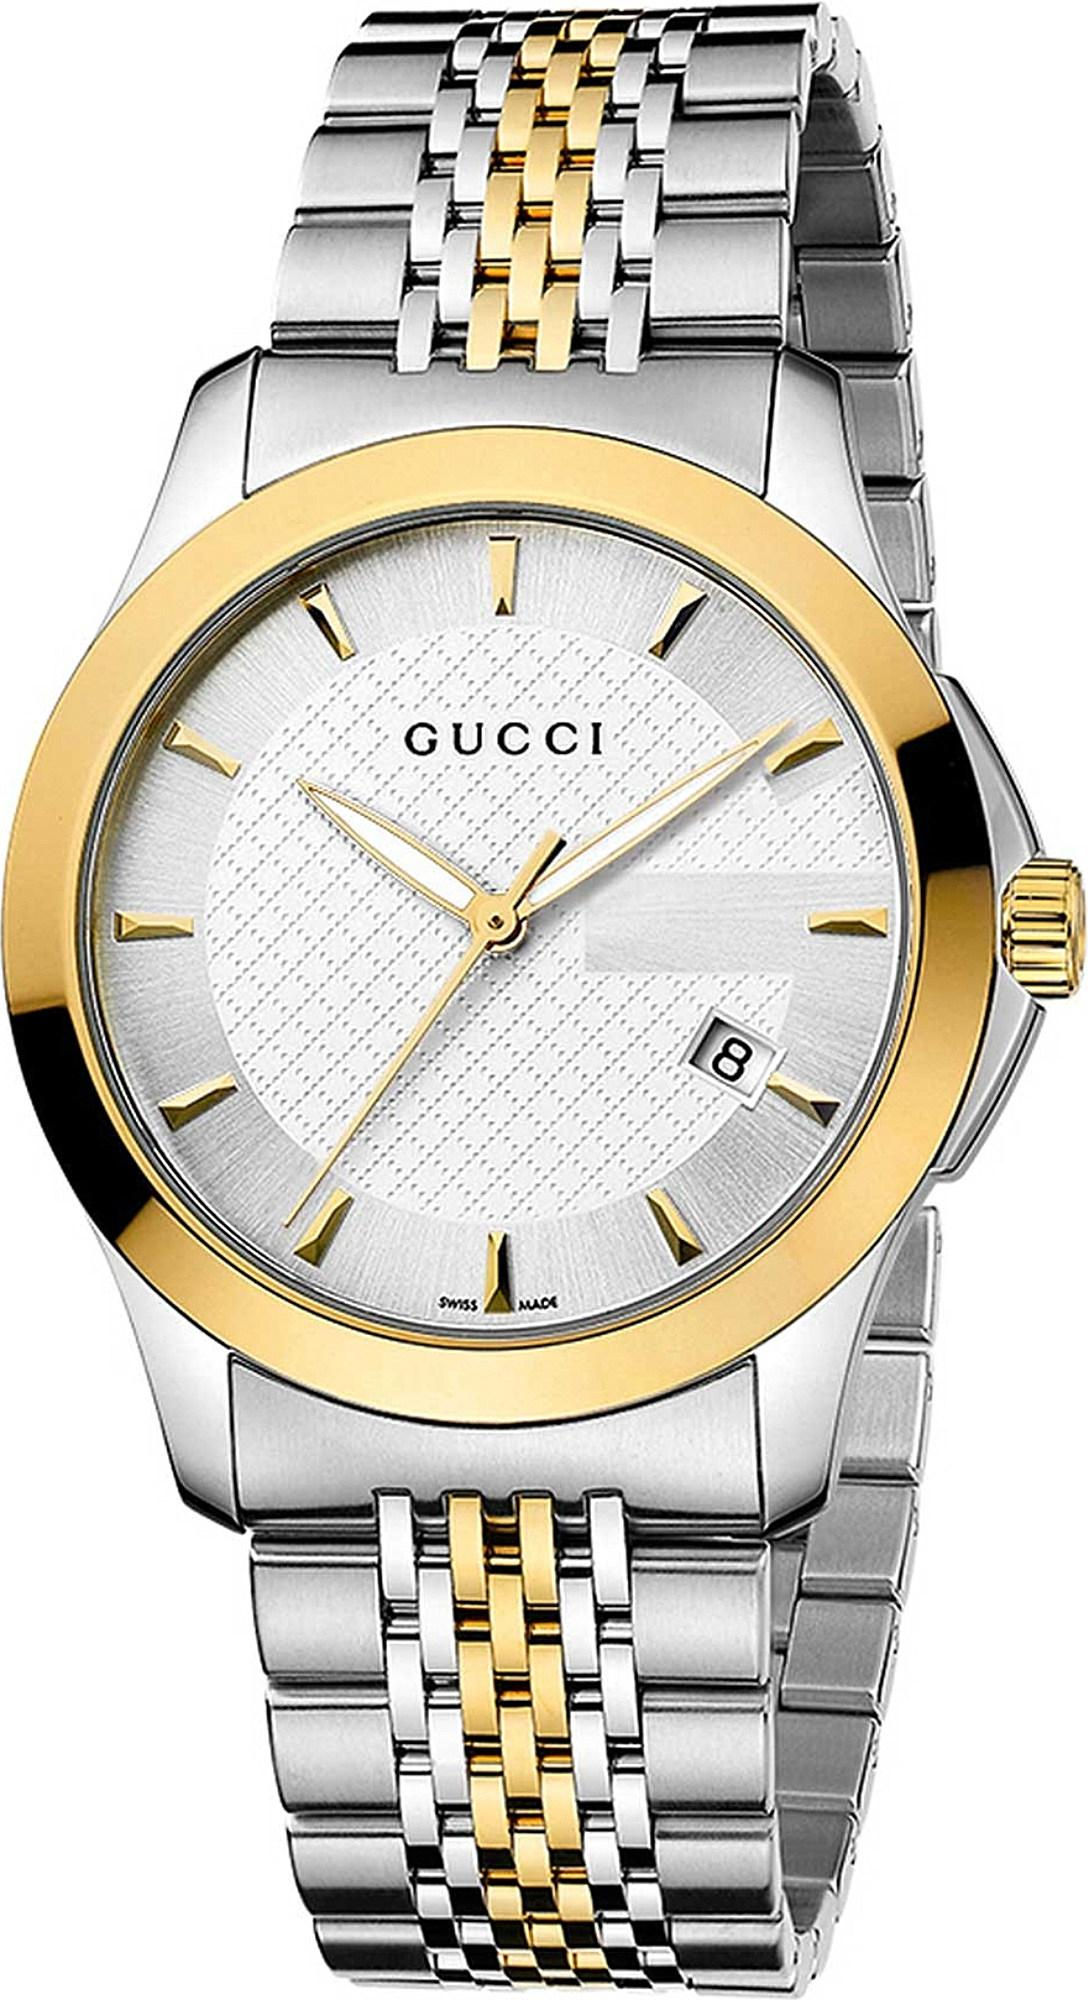 acaa9703936 Lyst - Gucci Ya126409 G-timeless Collection Stainless Steel And ...